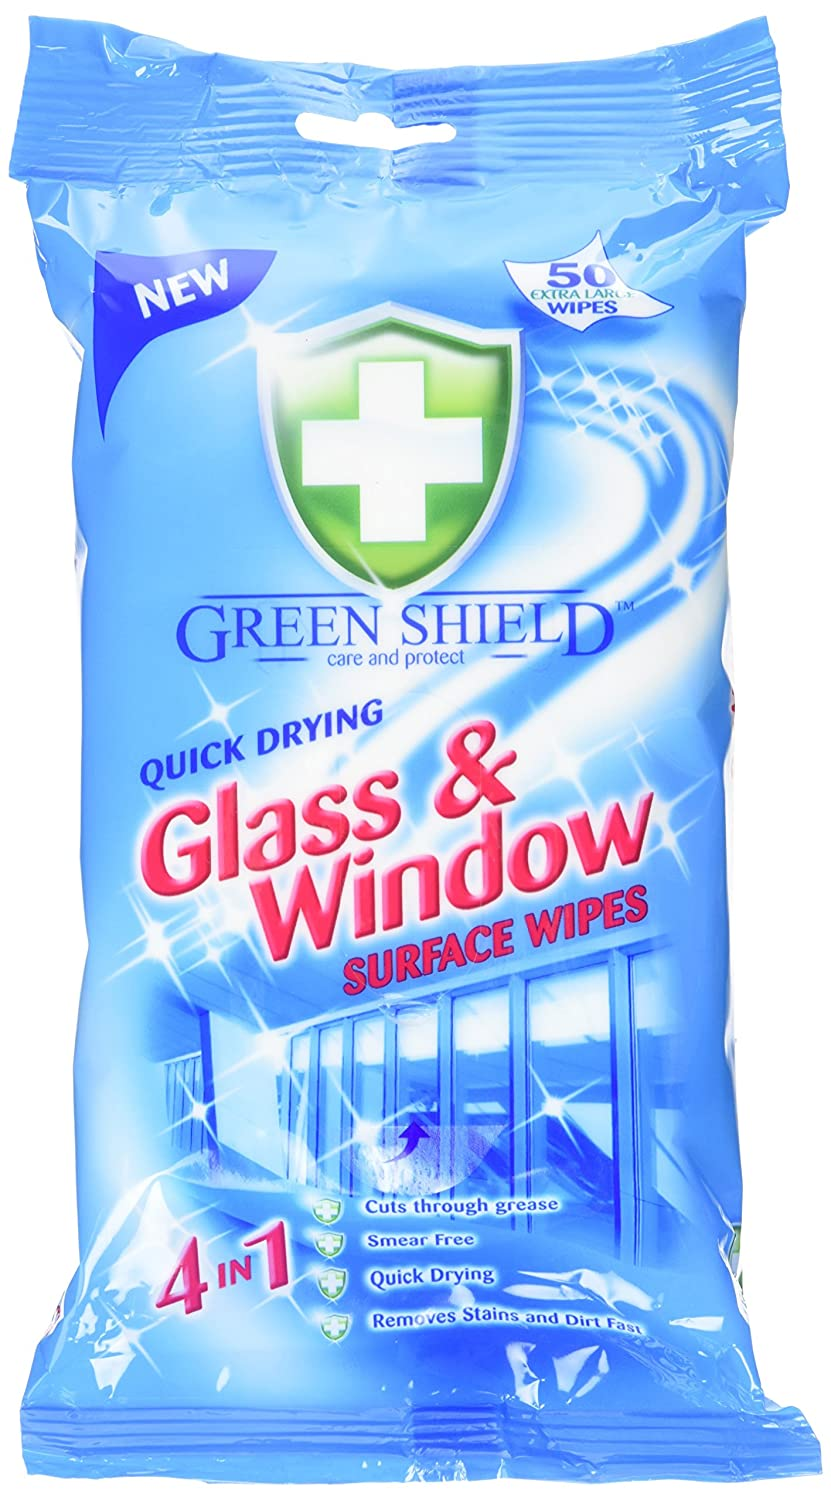 Green Shield Glass and Window Surface Wipes Pack of 8, Total 400